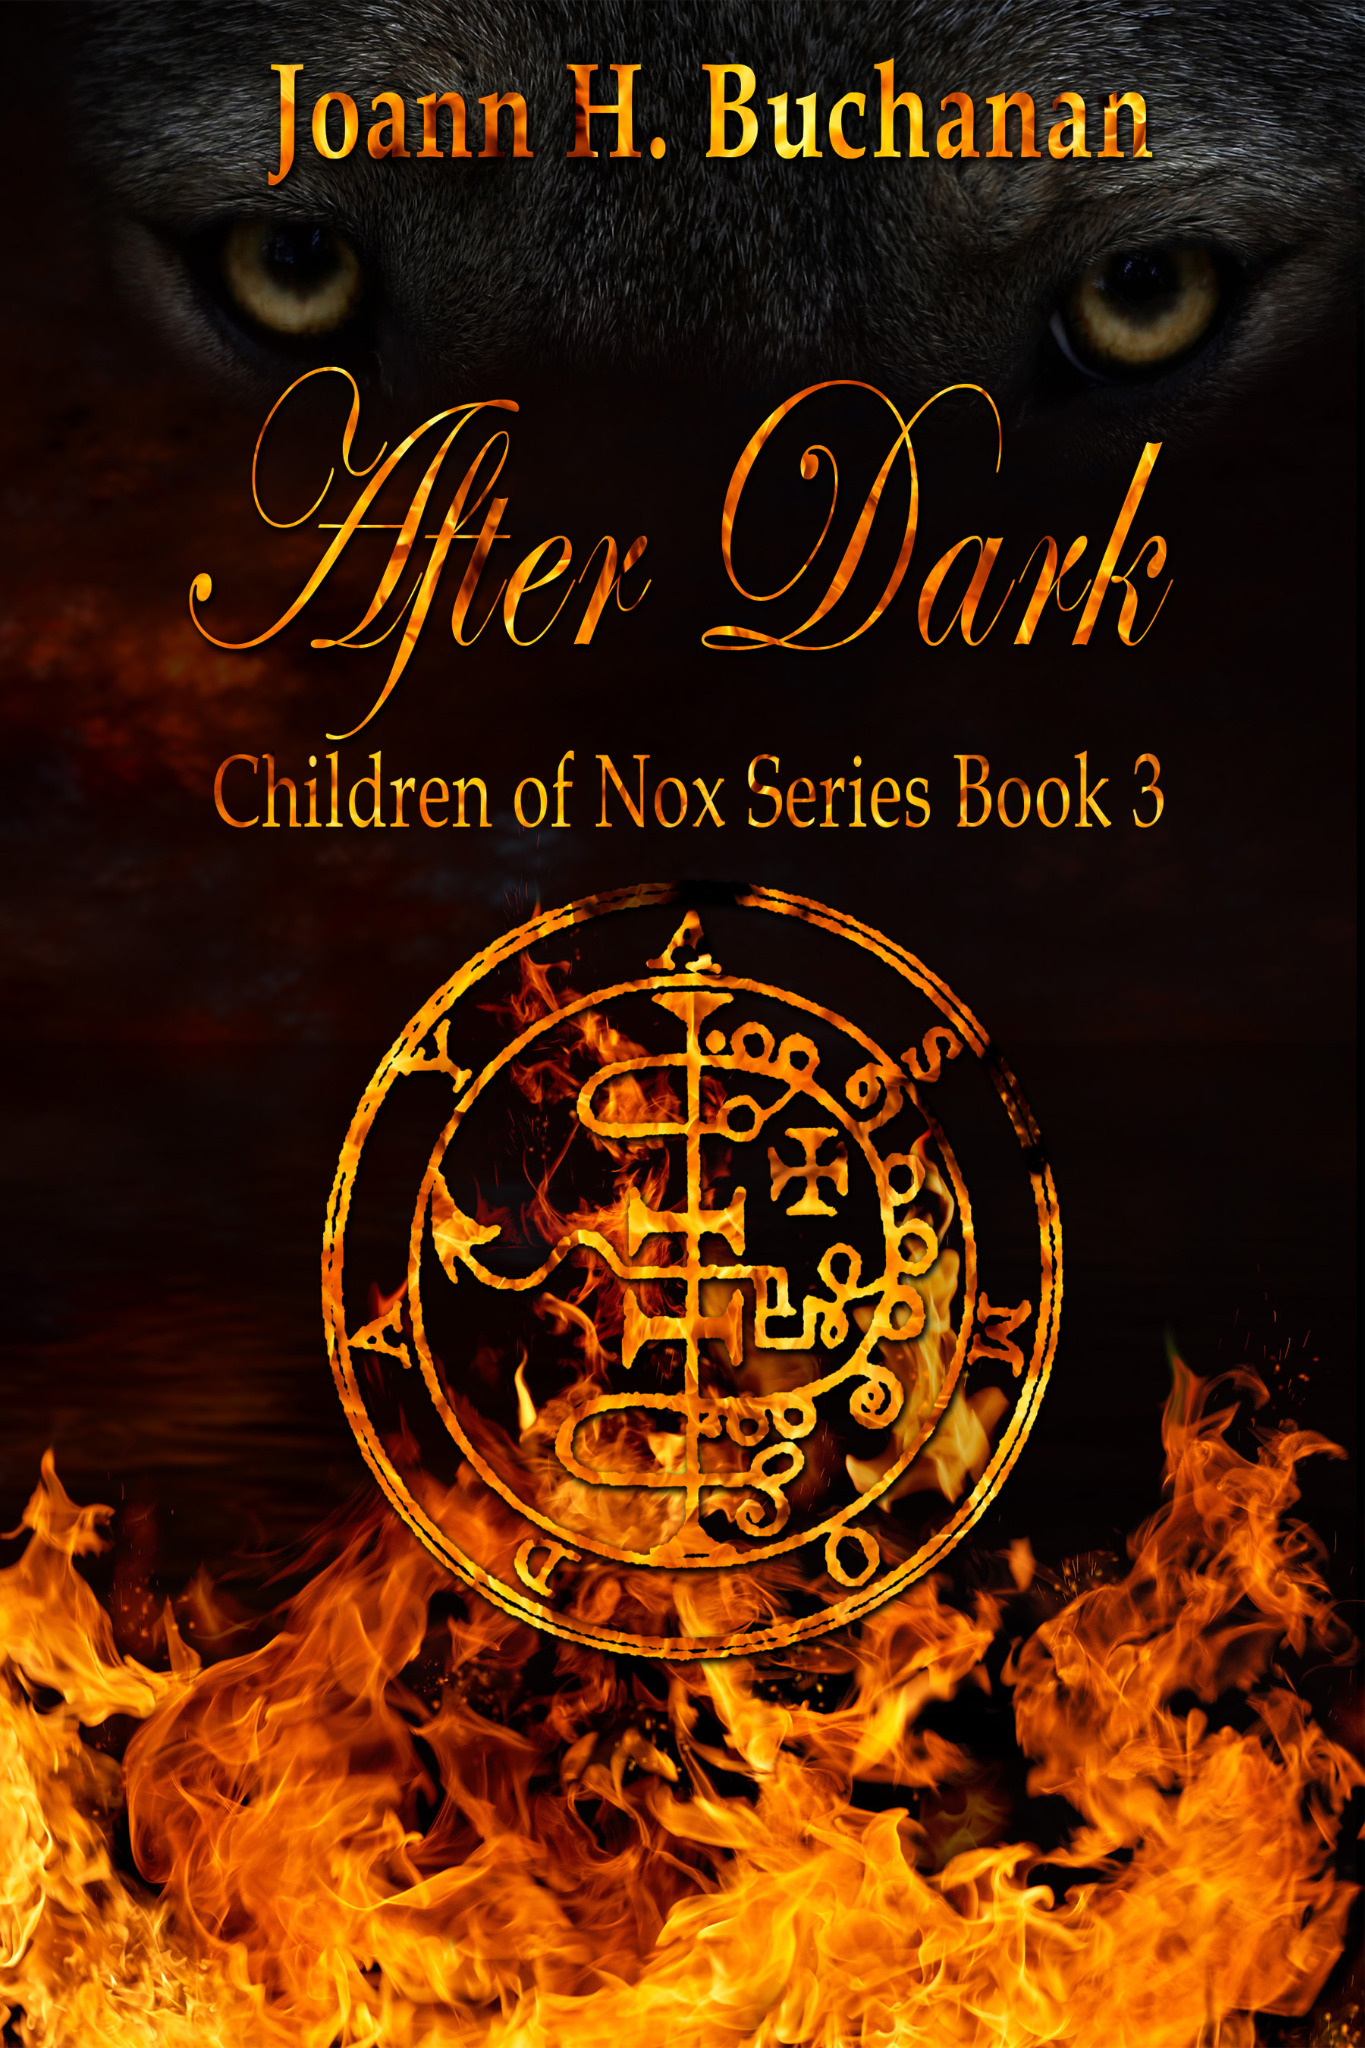 After Dark - Children of Nox Series Book 3